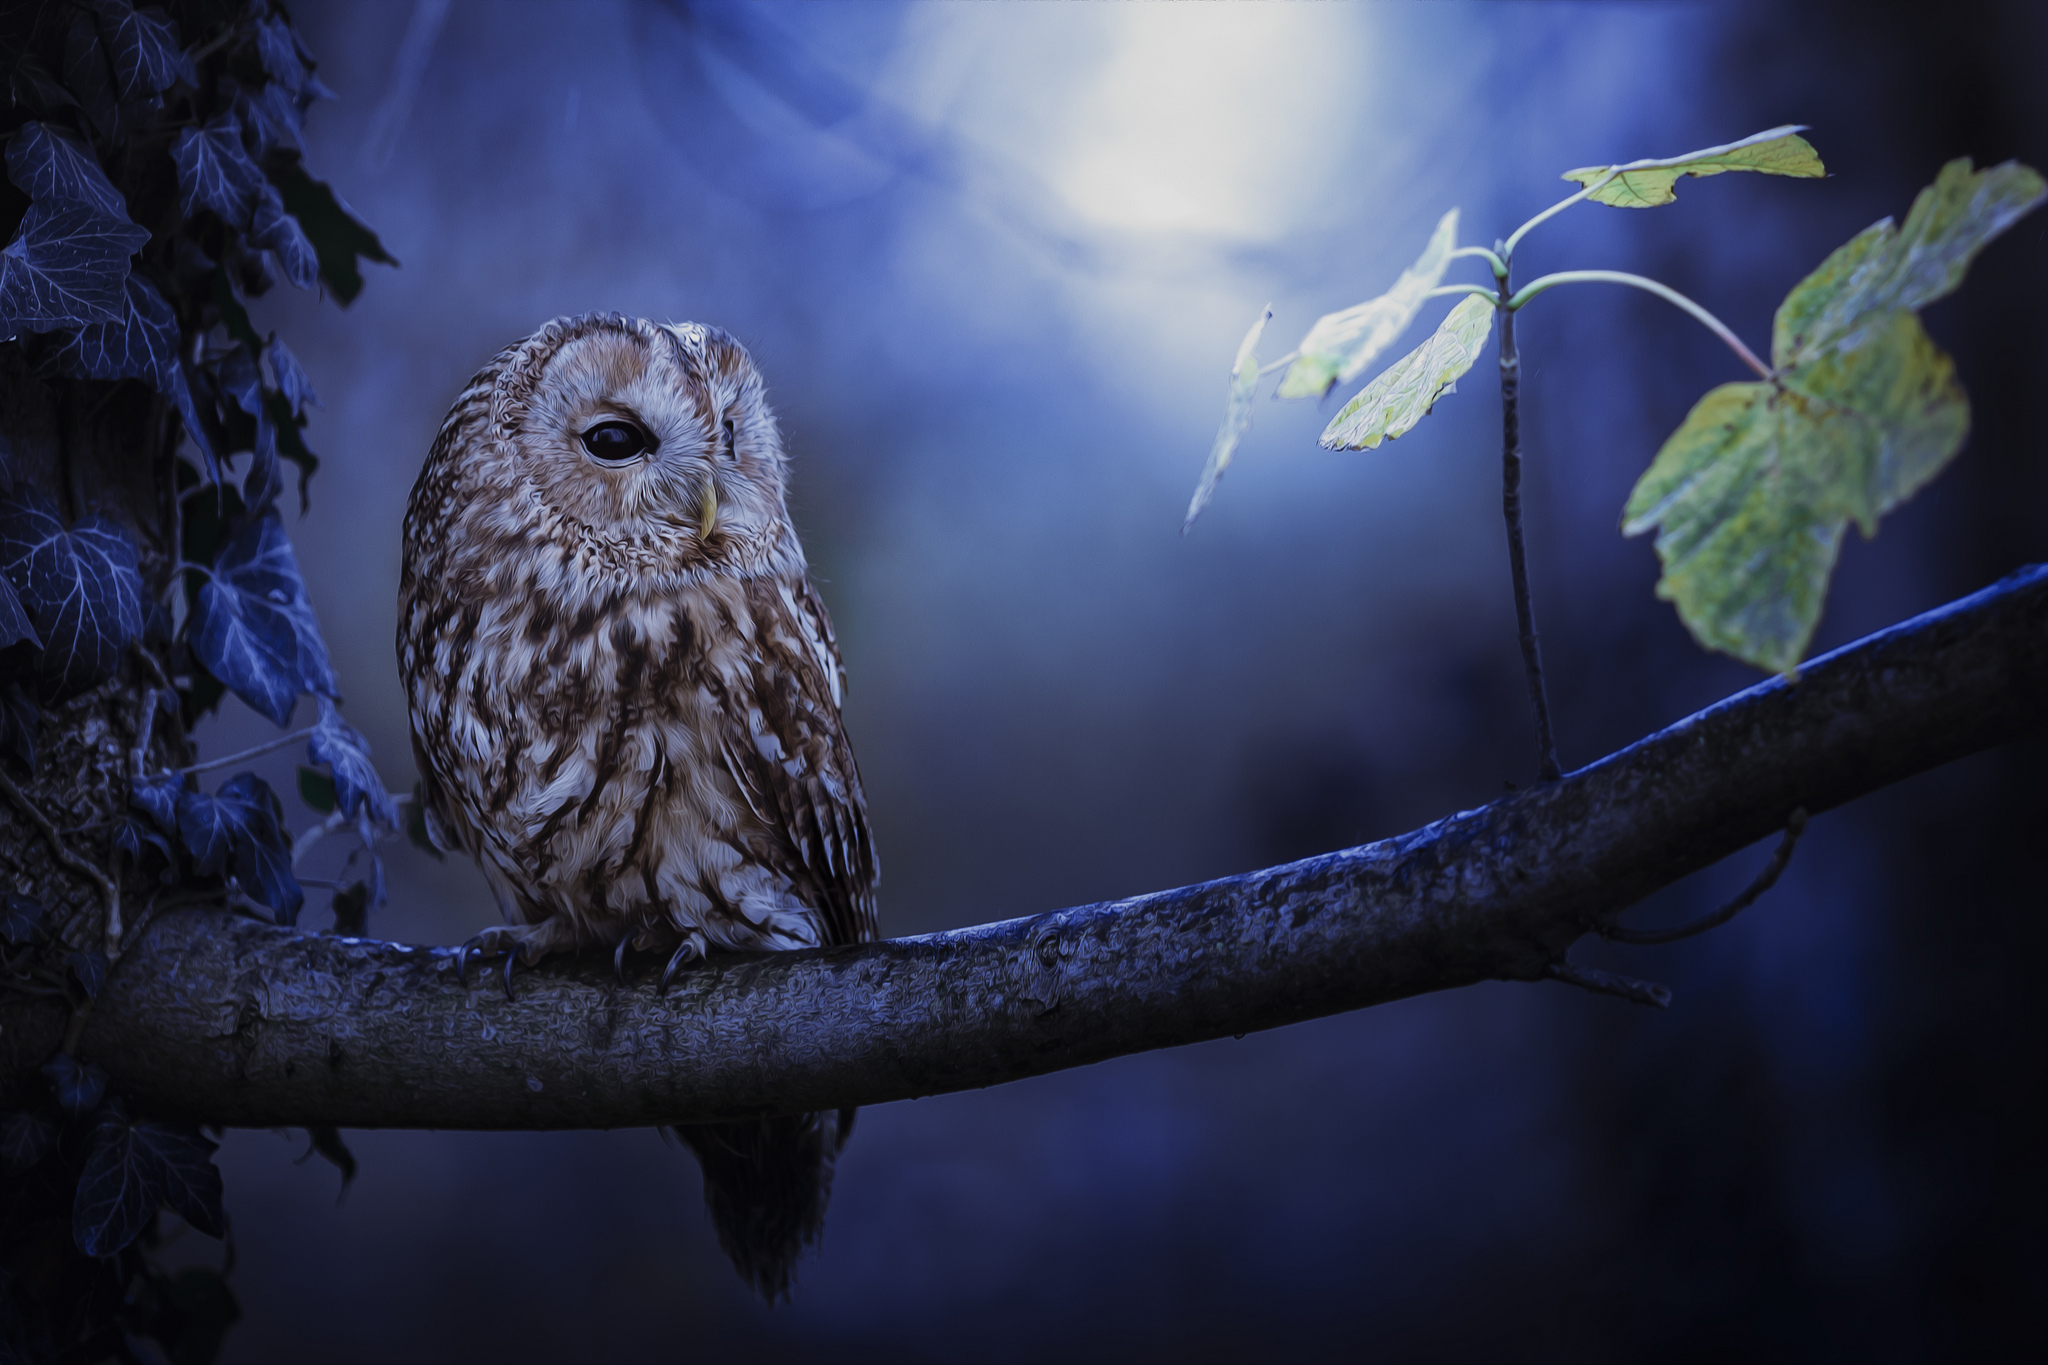 tawny owl in moonlight hd animals 4k wallpapers images